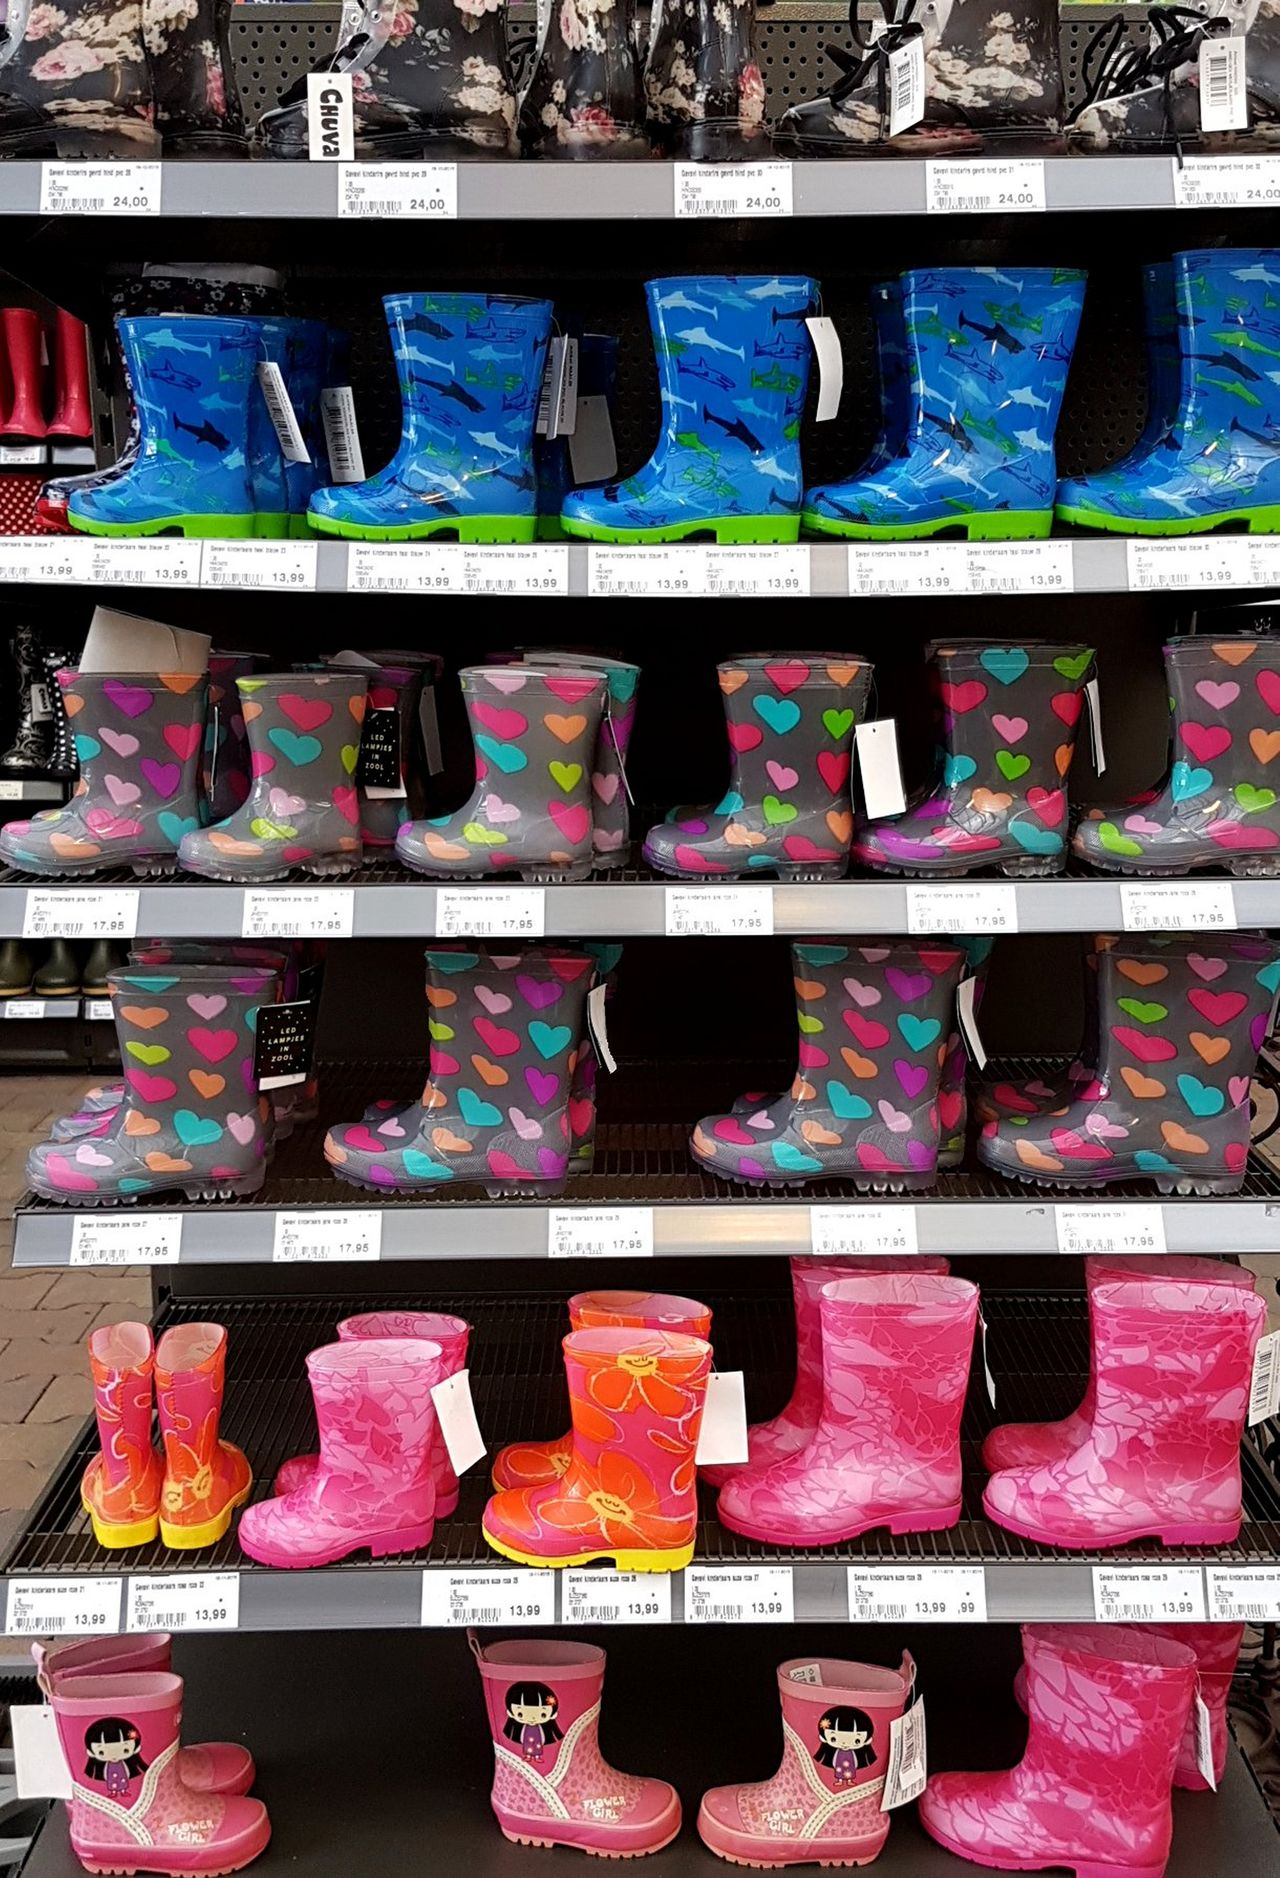 Autumn Bad Weather Shoes Business Children's Boots Choice Colourfull Fall Indoors  Large Group Of Objects Multi Colored No People Rain Retail  Shelf Shop Store Variation